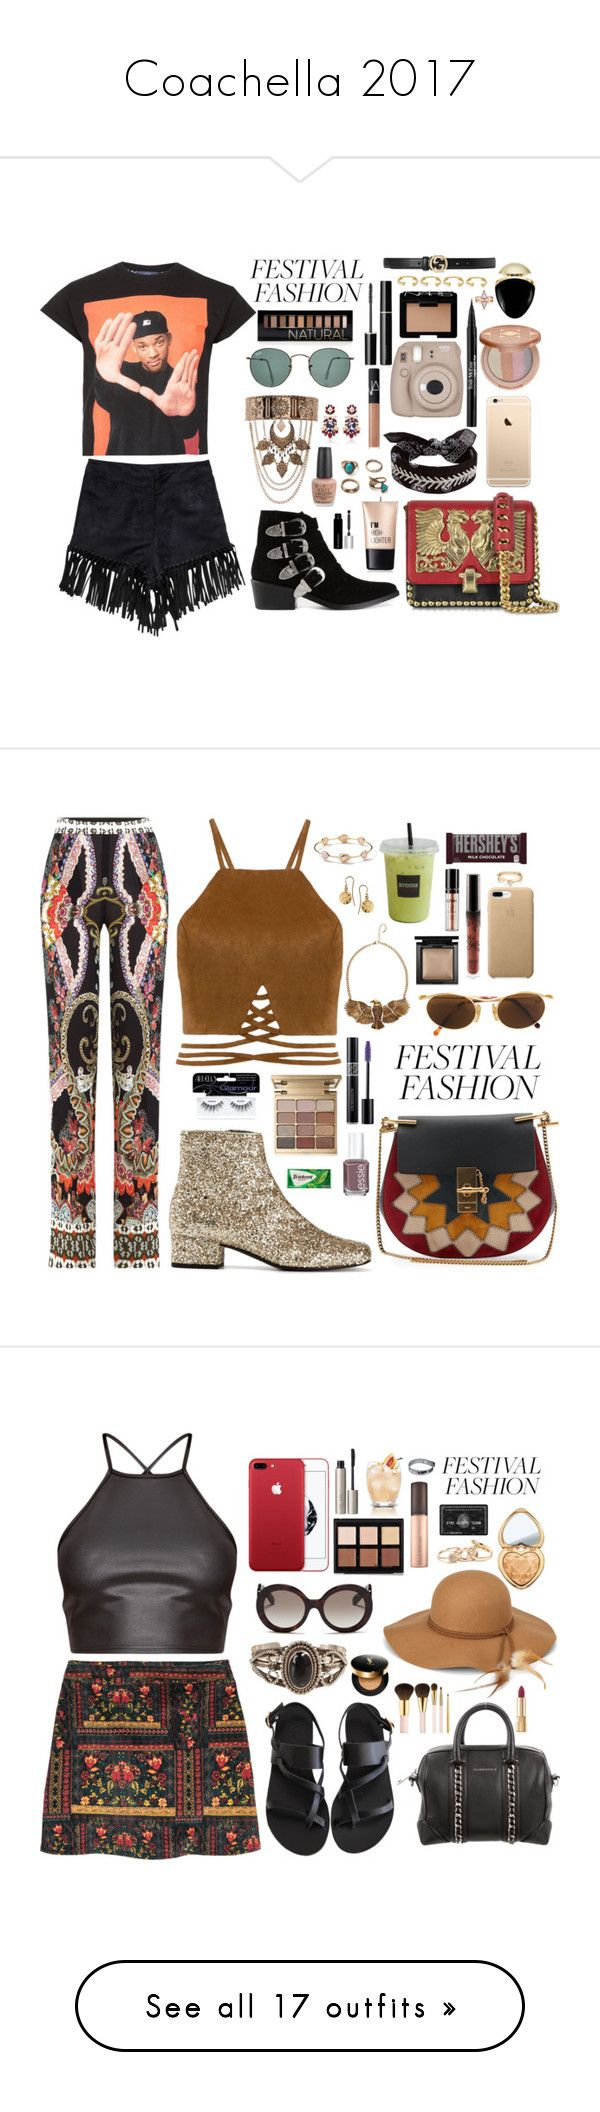 """Coachella 2017"" by thecaitlinpeters ❤ liked on Polyvore featuring Topman, Roberto Cavalli, Ray-Ban, NLY Trend, New Look, Toga, Fallon, tarte, Charlotte Russe and NARS Cosmetics"